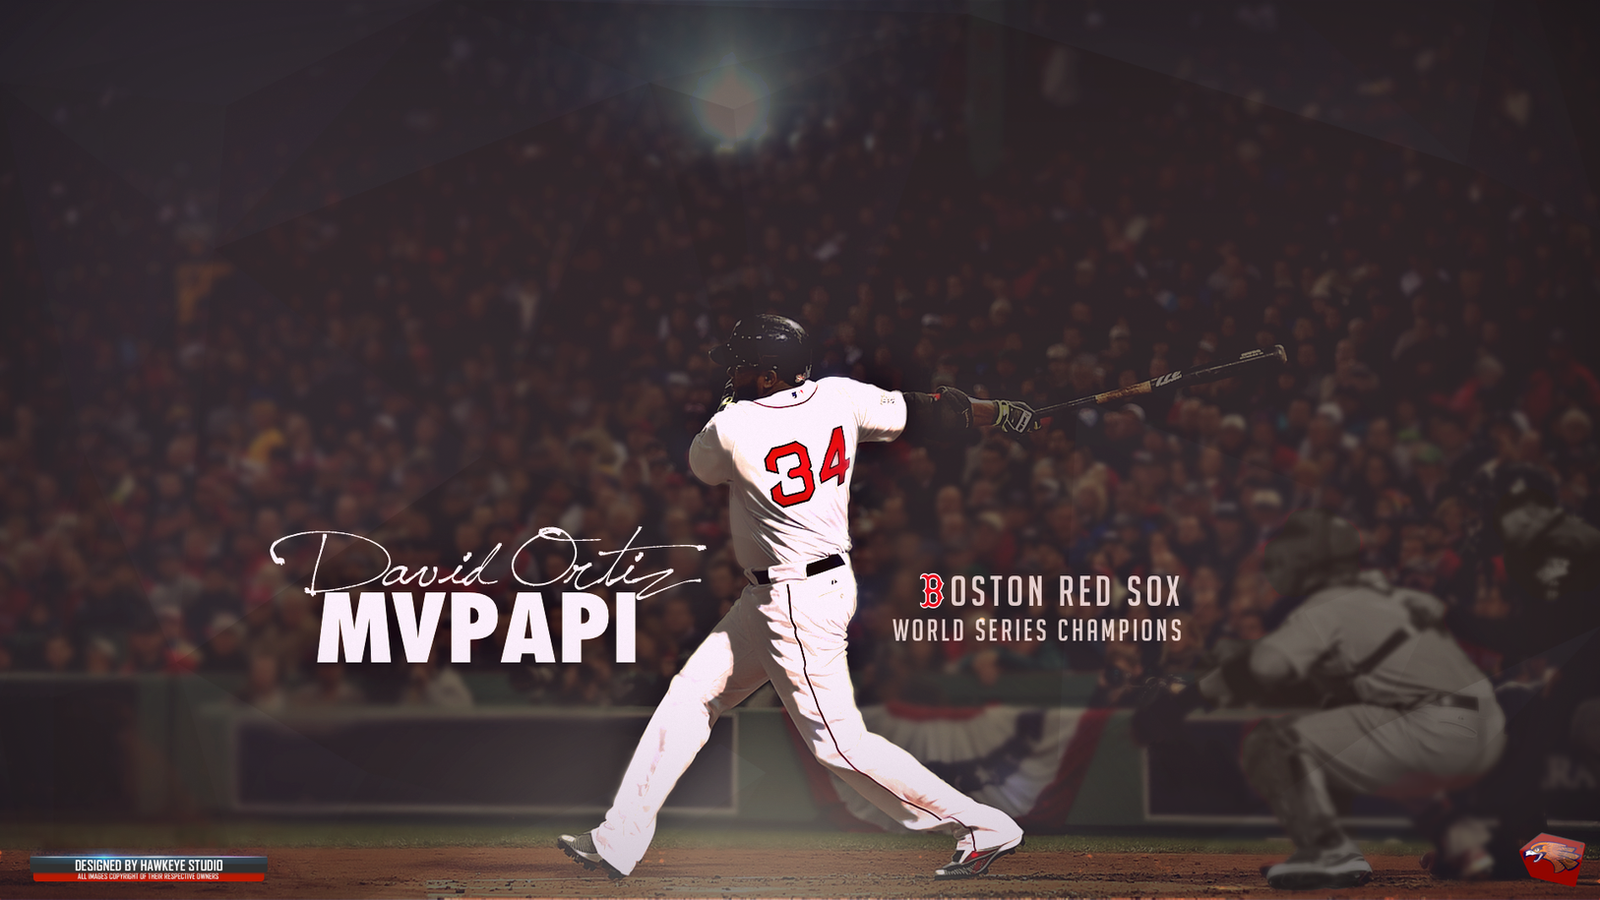 boston red sox wallpaper widescreen - photo #27